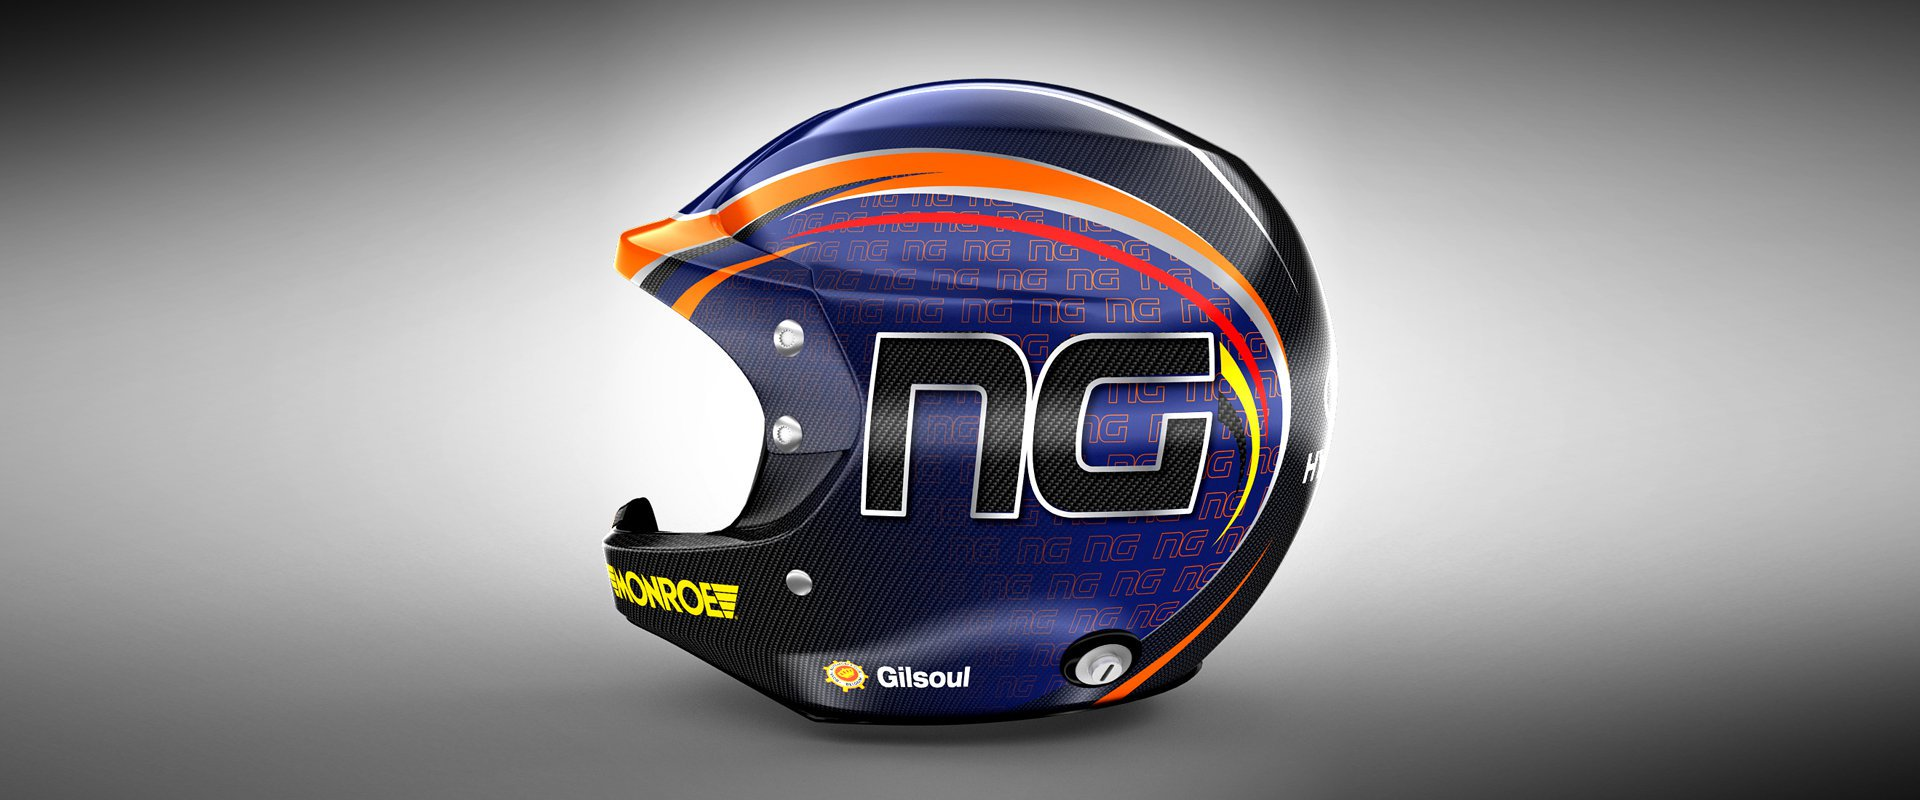 Nicolas Gilsoul - co driver of Thierry Neuville #2